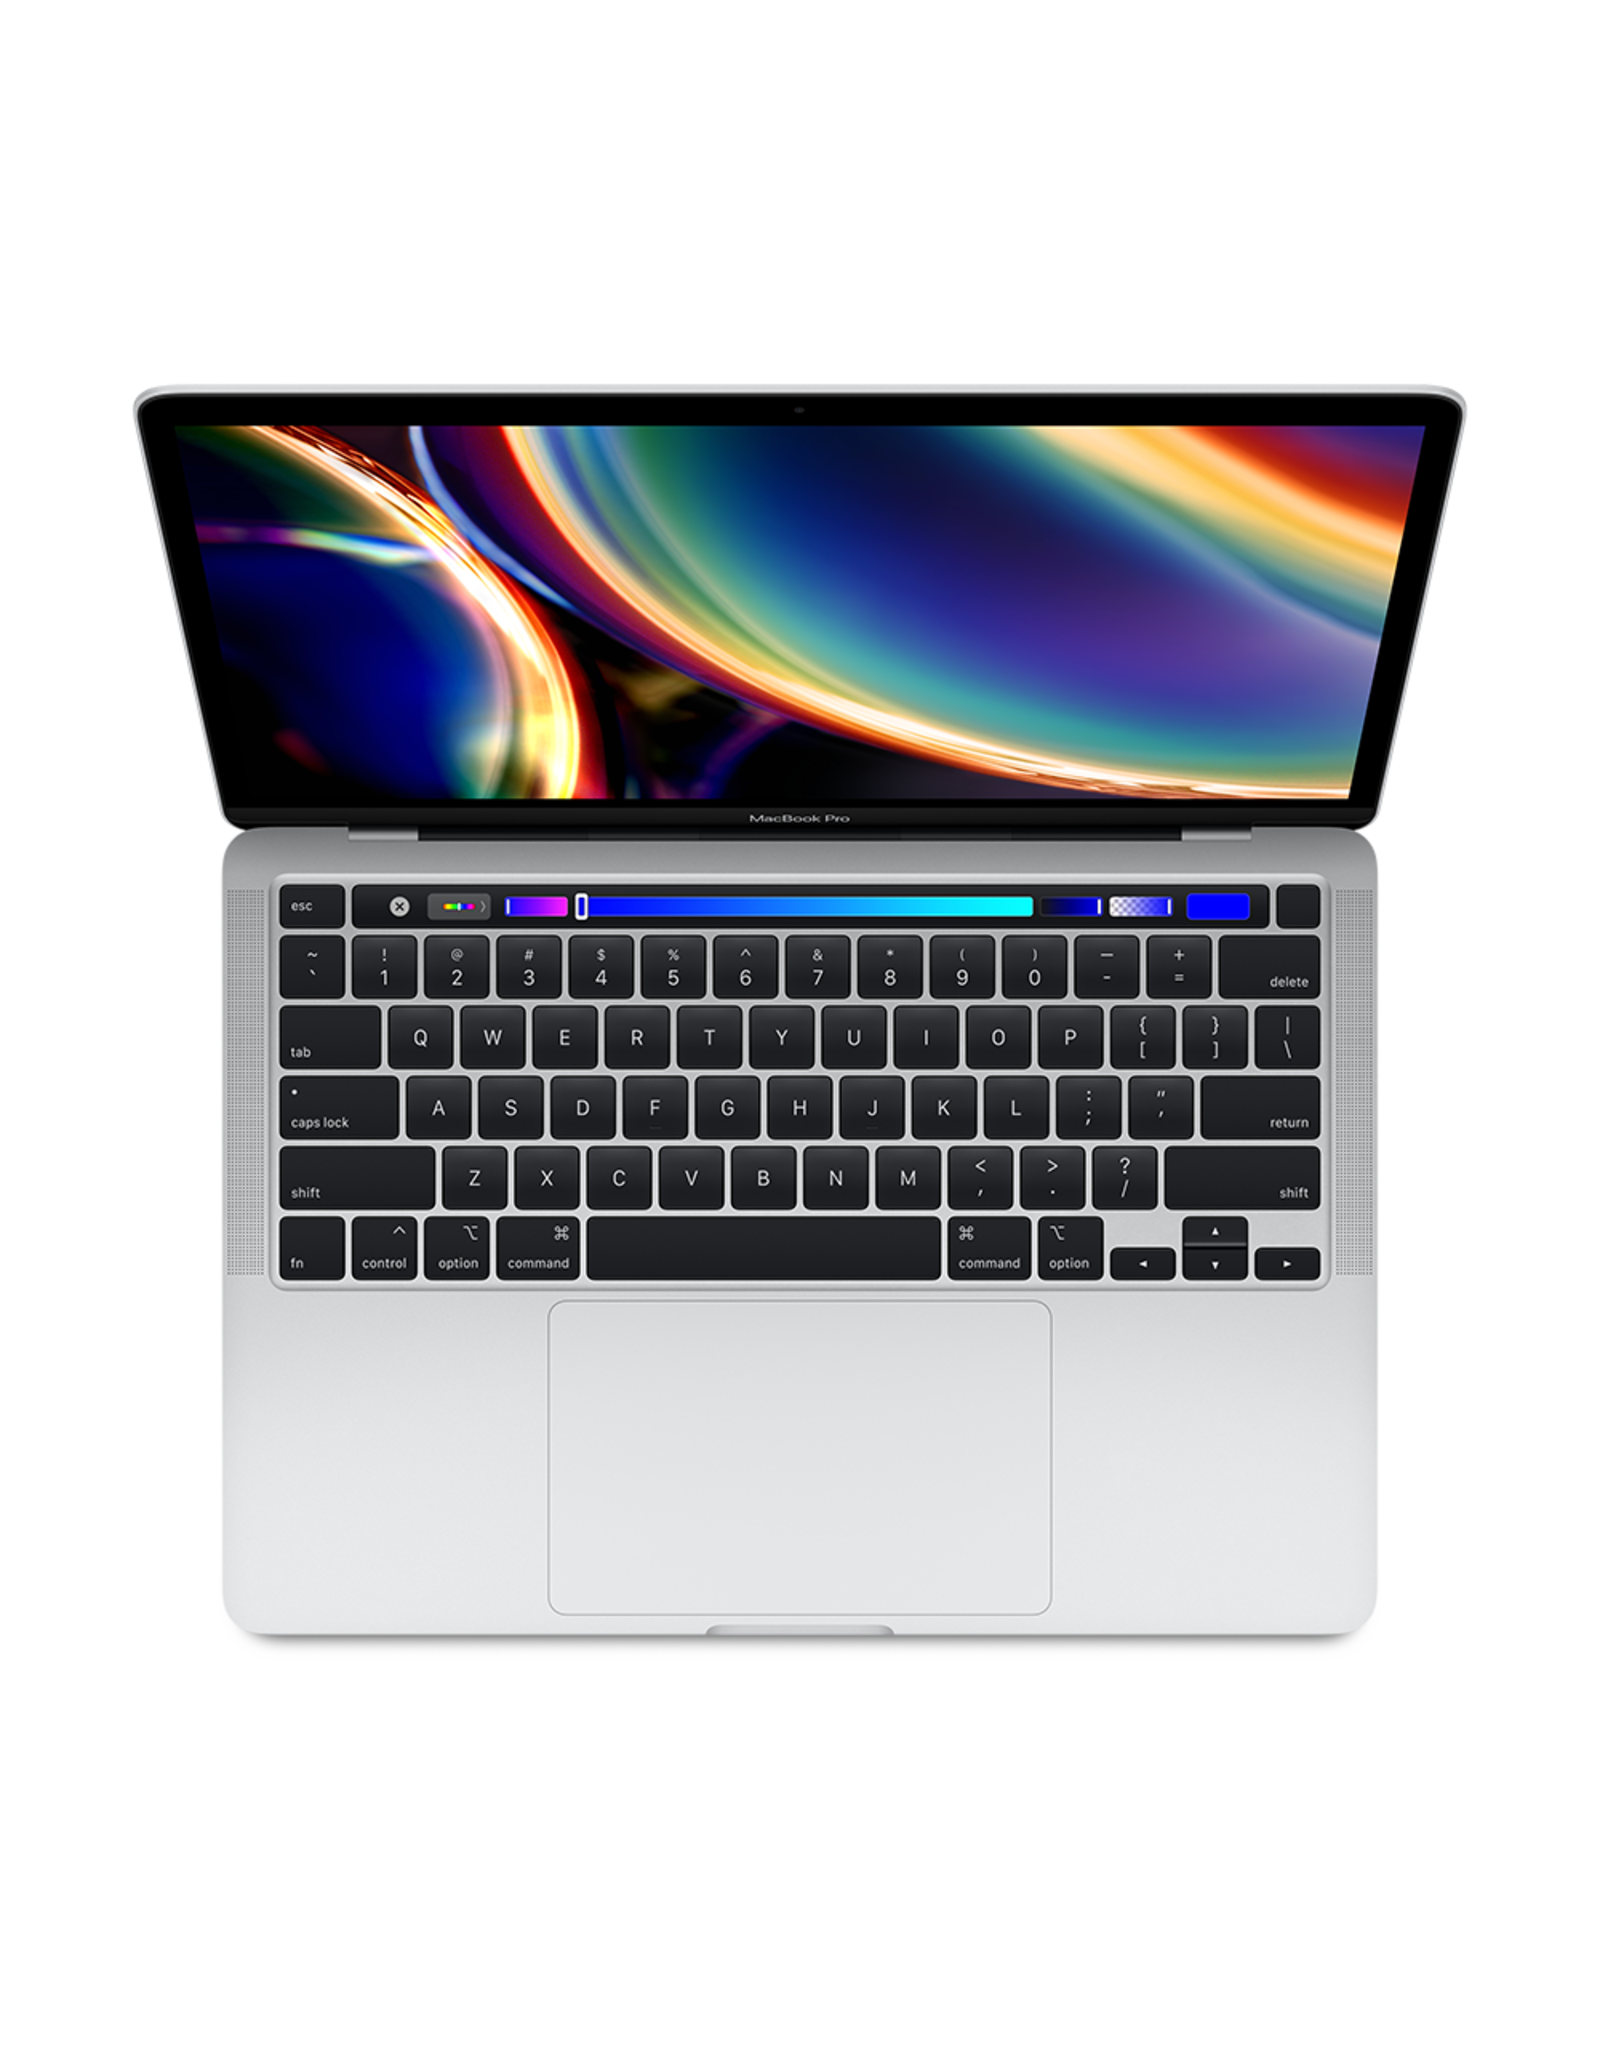 Apple Apple 13-inch MacBook Pro 1TB 2.0GHz quad-core i5 4TBP 16GB RAM  Intel Iris Plus Graphics